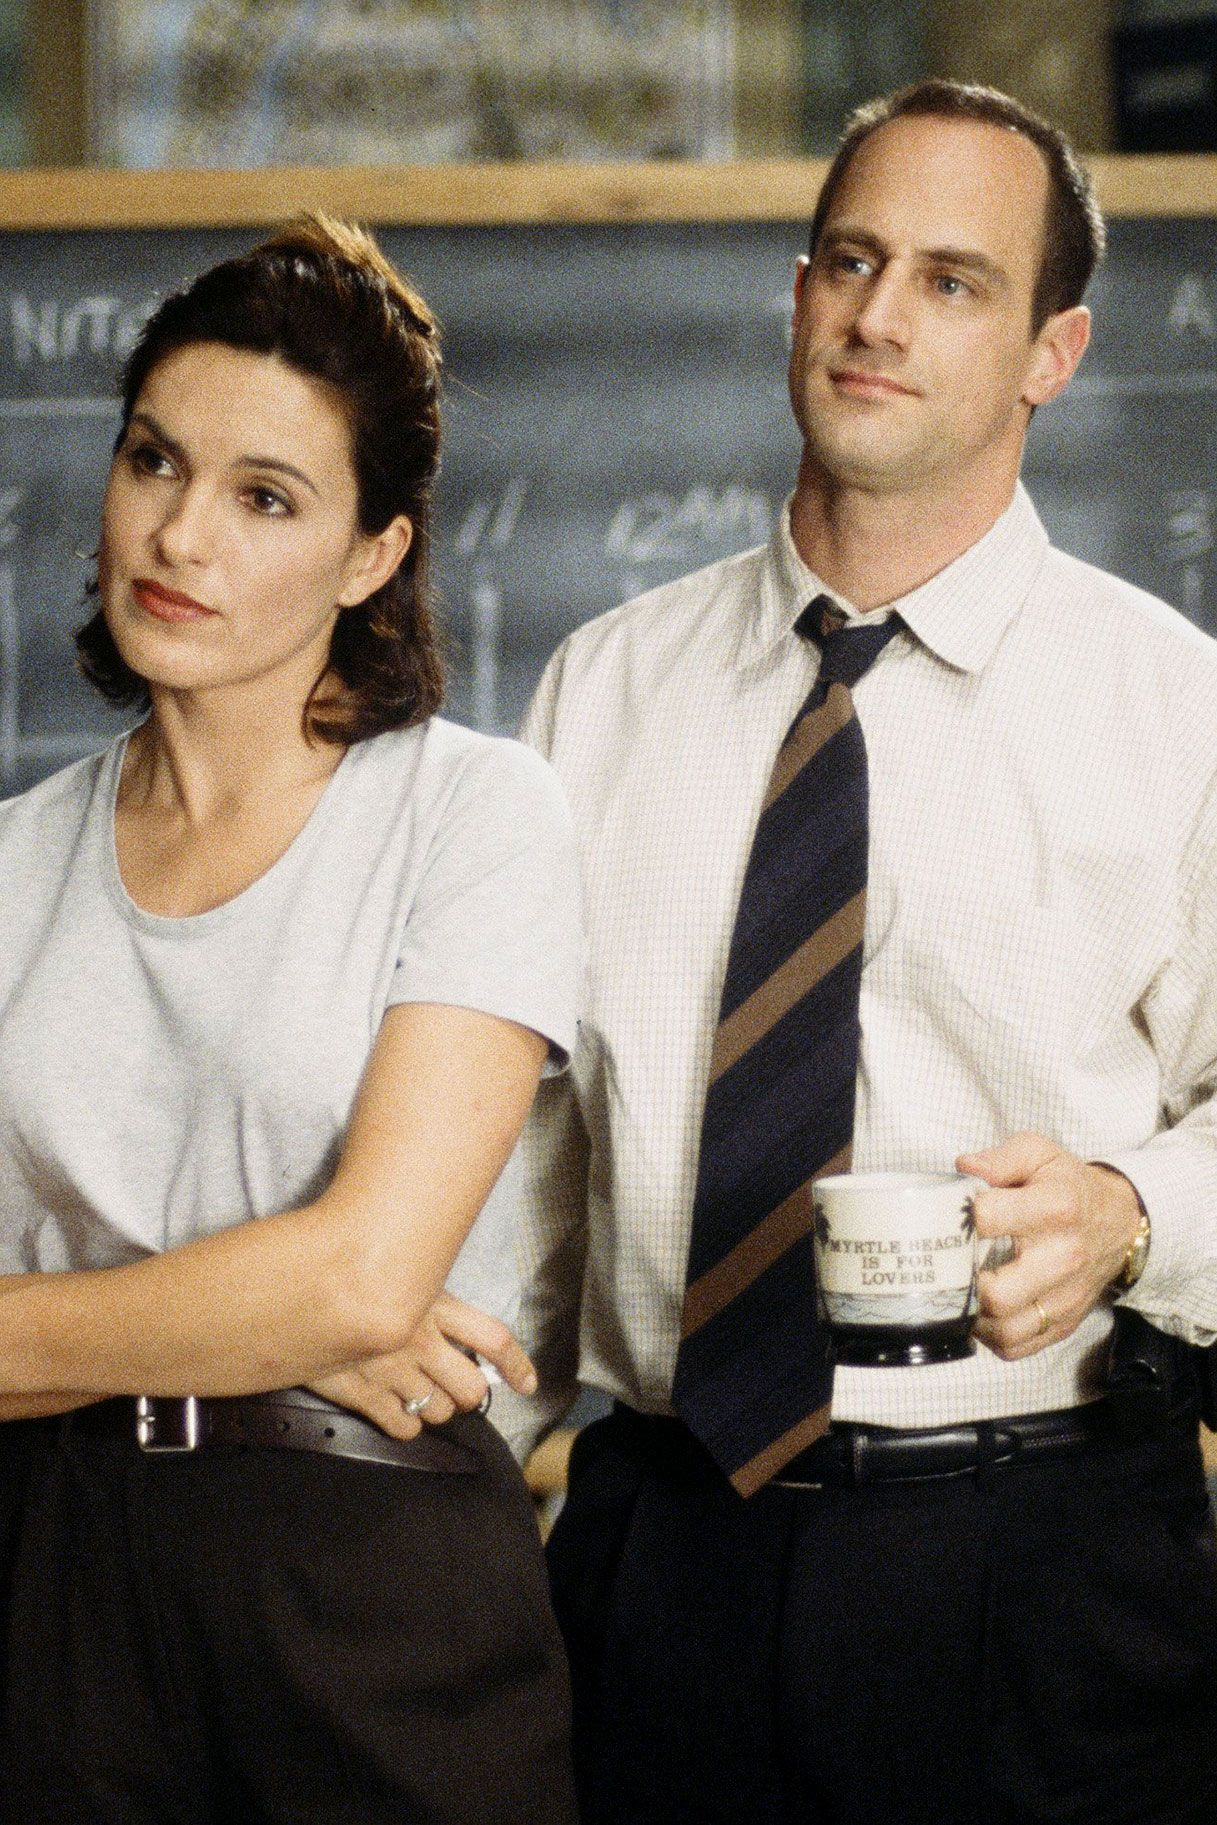 Elliot stabler and olivia benson wish these two would finally hook